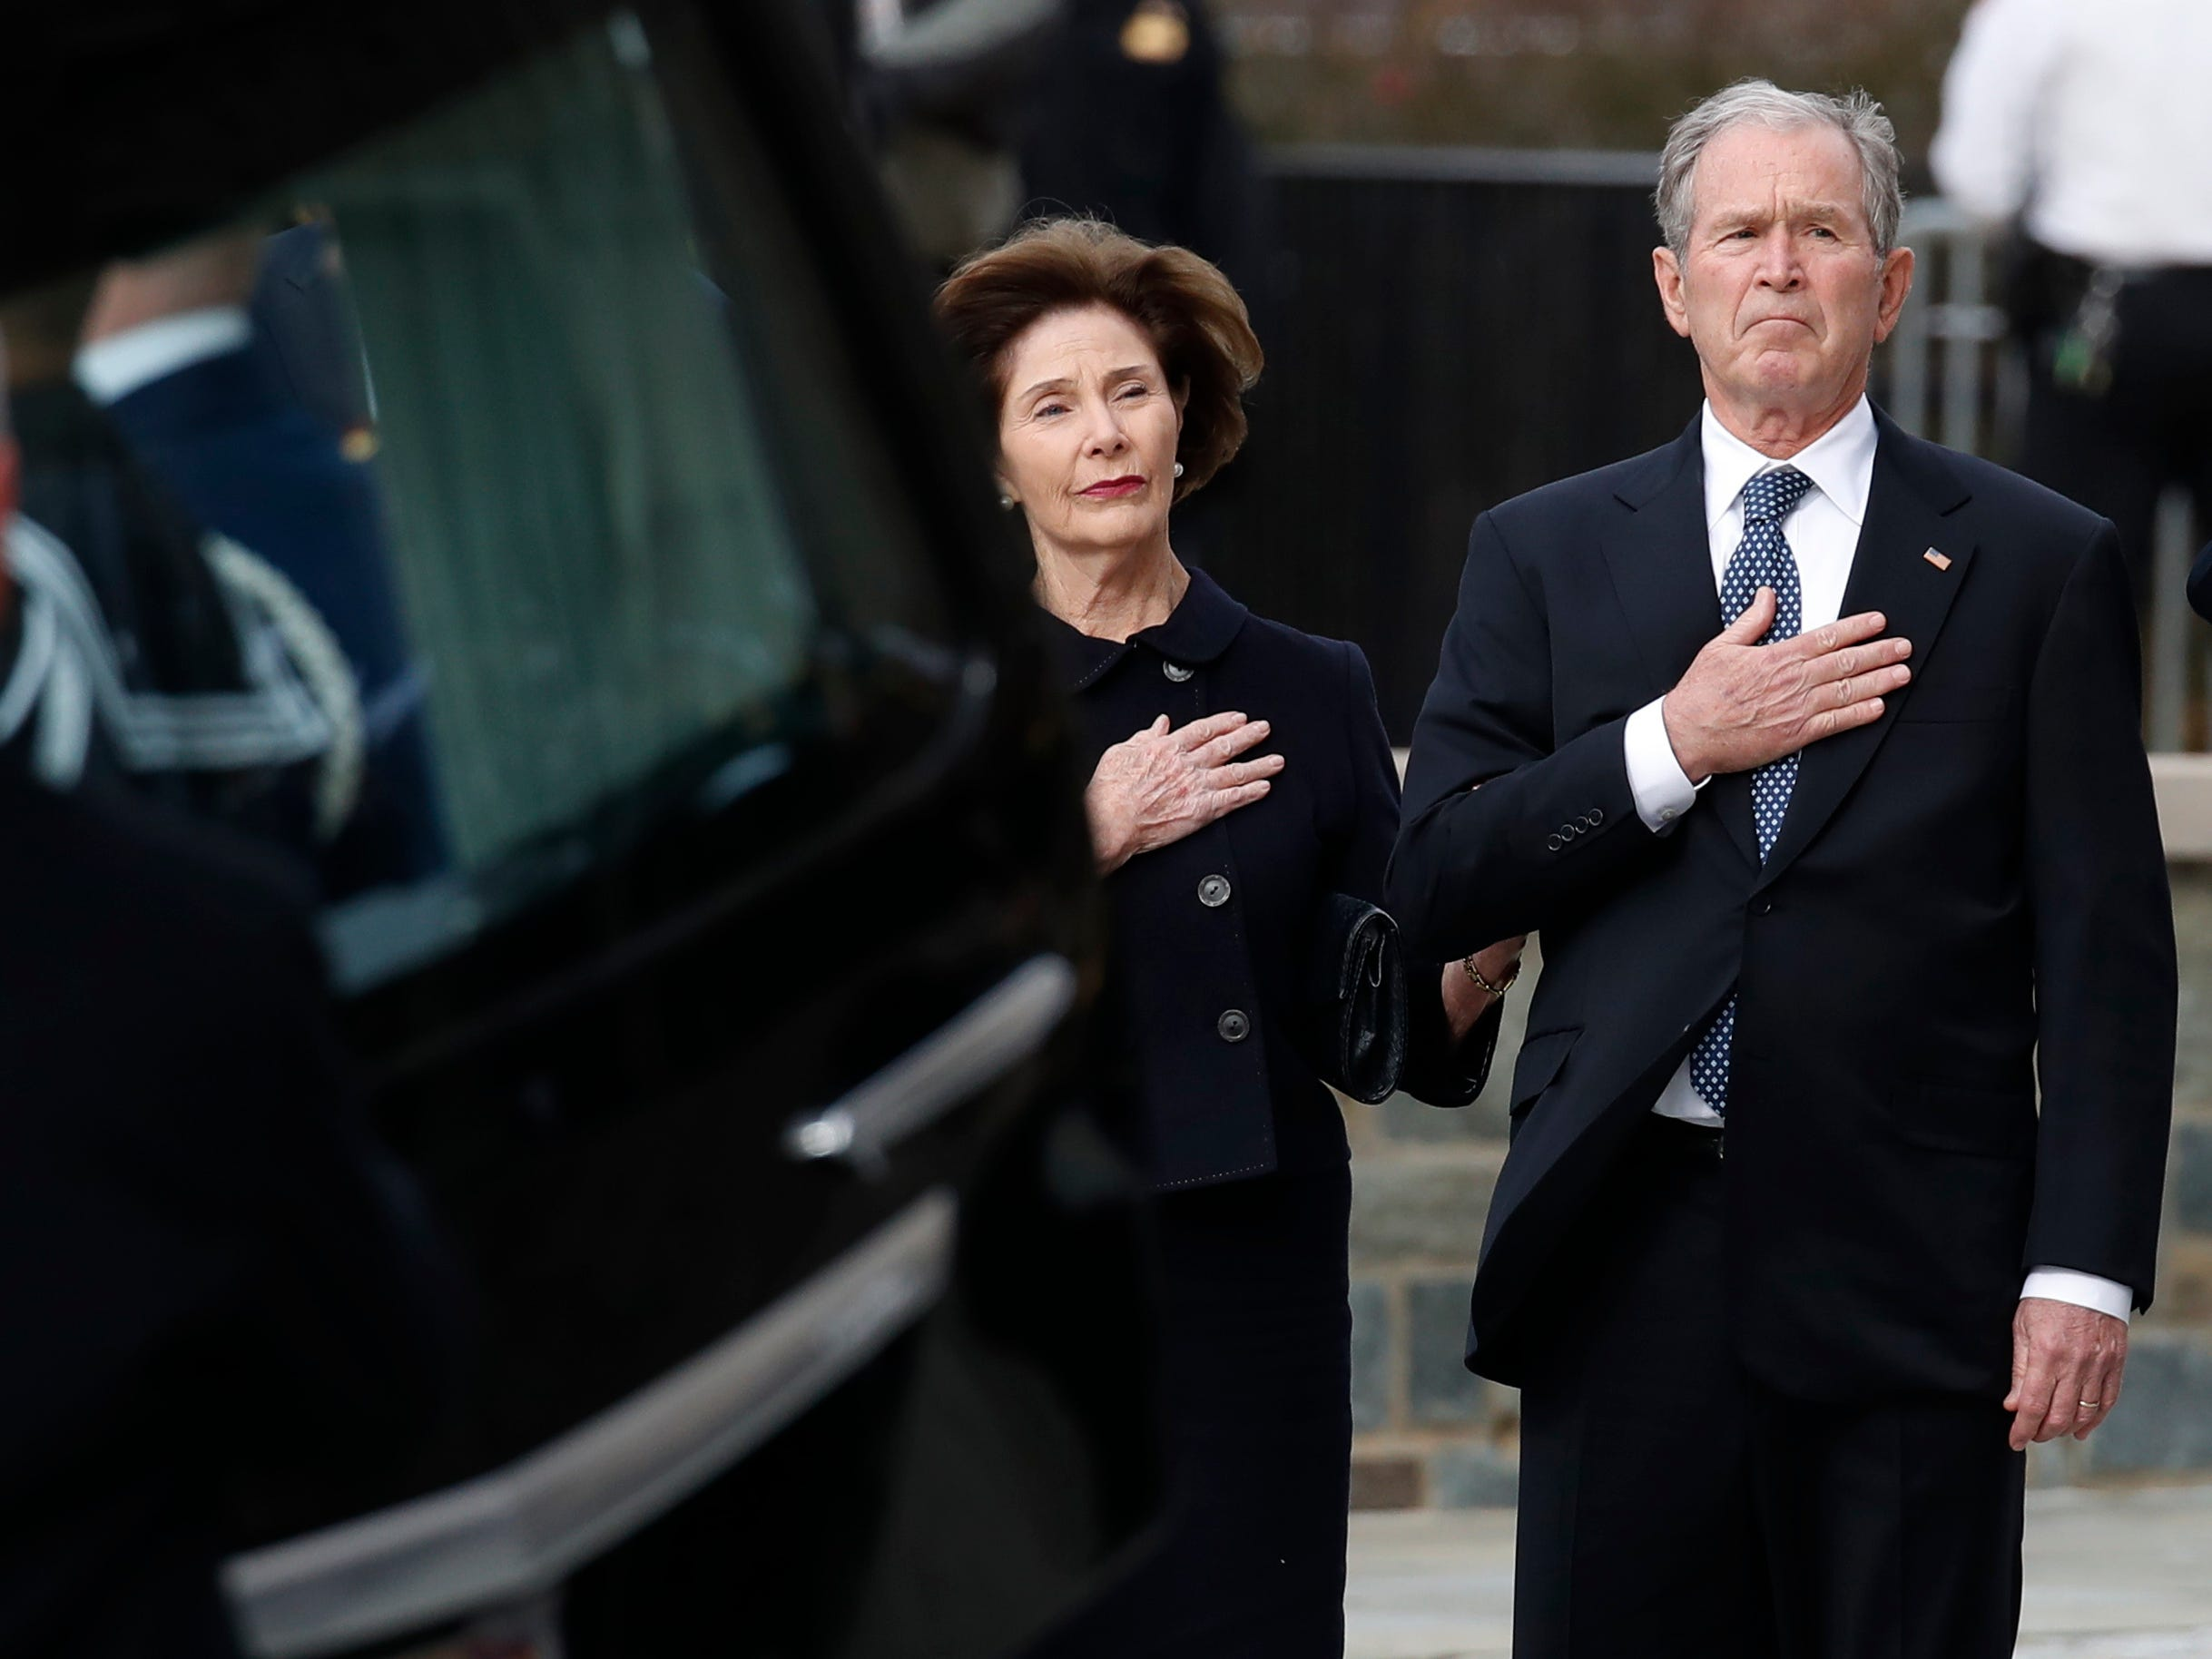 Former President George W. Bush and Laura Bush watch as the flag-draped casket of former President George H.W. Bush is carried by a joint services military honor guard to a State Funeral at the National Cathedral, Wednesday, Dec. 5, 2018, in Washington.